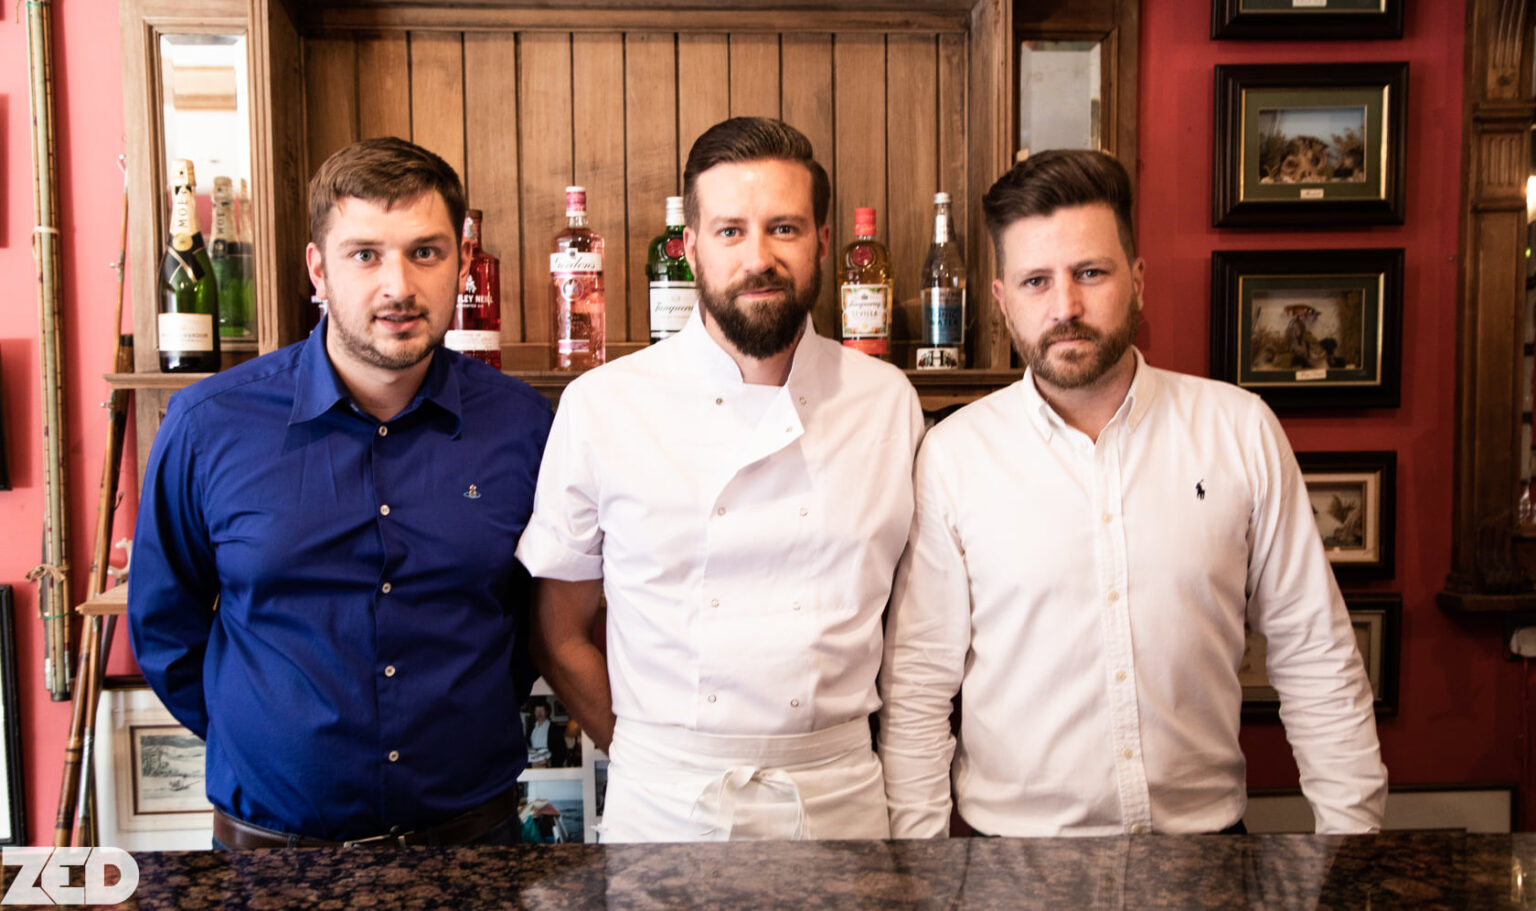 Jamie Rae (left), Partrick Tyndall (centre) and Steven Hames (right) at The Lansdowne Bistro in Southport. Photo by ZEDPhotography